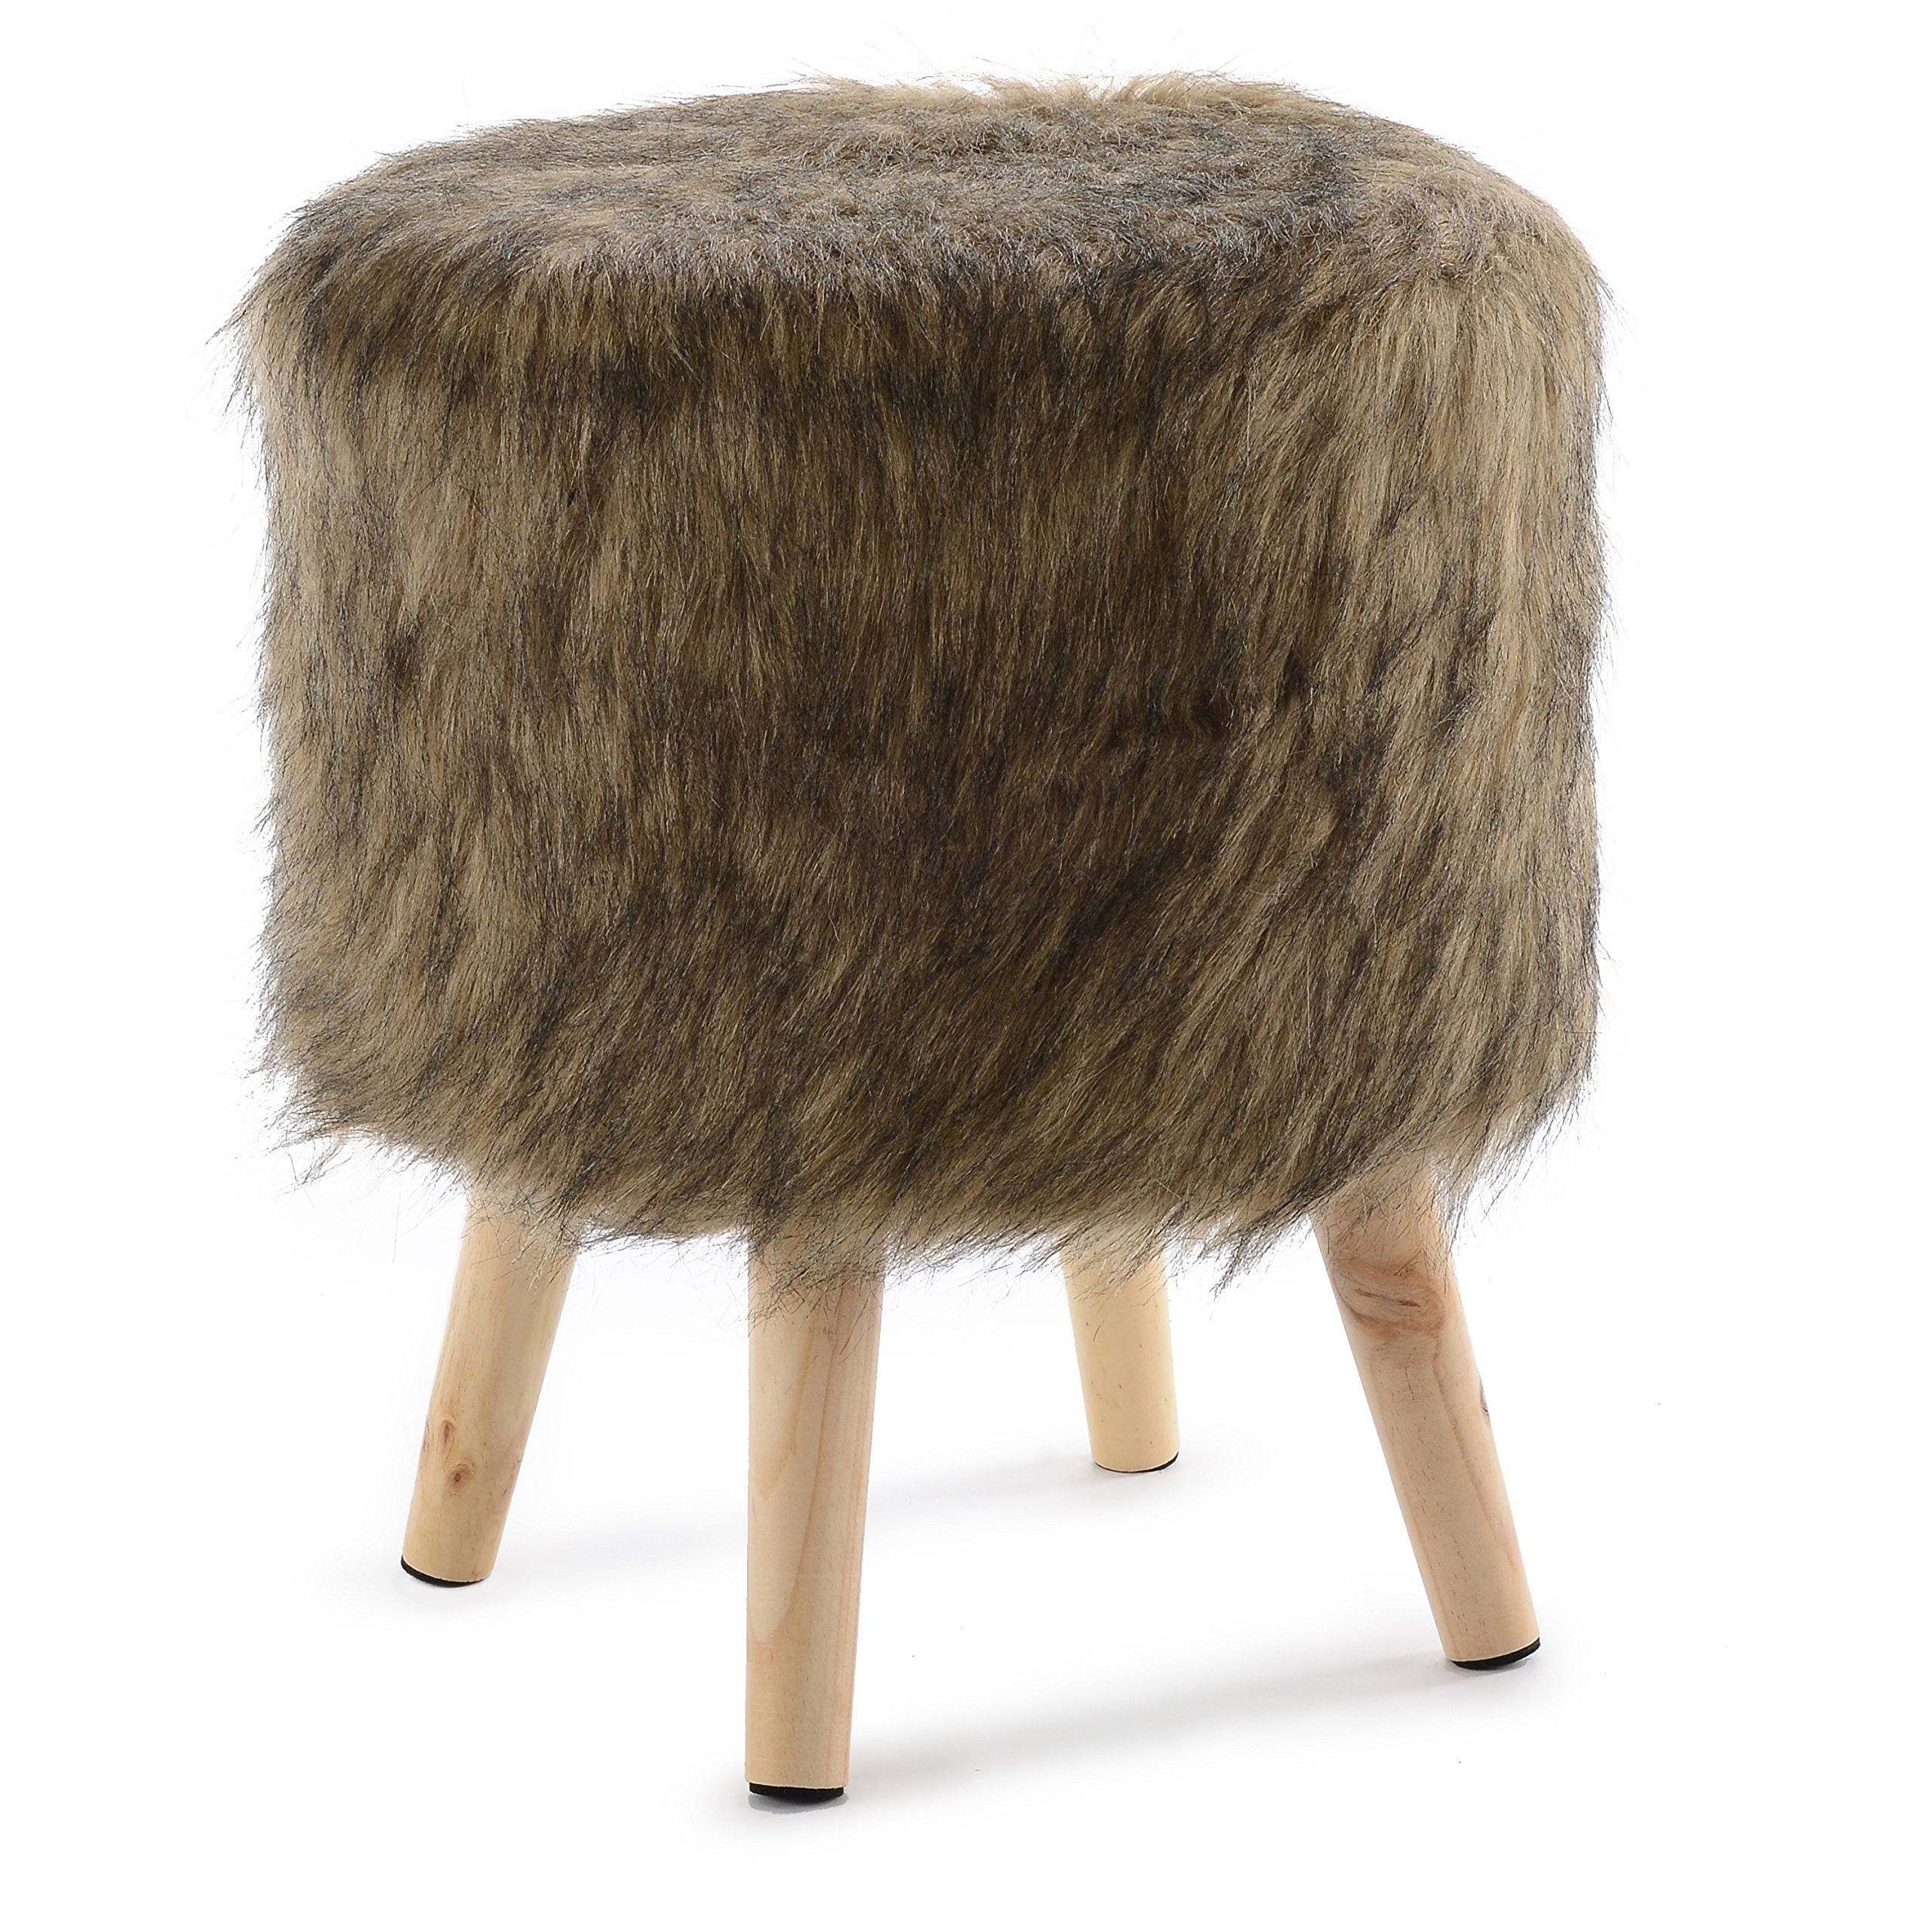 Cheer Collection 13'' Round Ottoman | Super Soft Decorative Brown Mink Faux Fur Foot Stool with Wood Legs by Cheer Collection (Image #1)